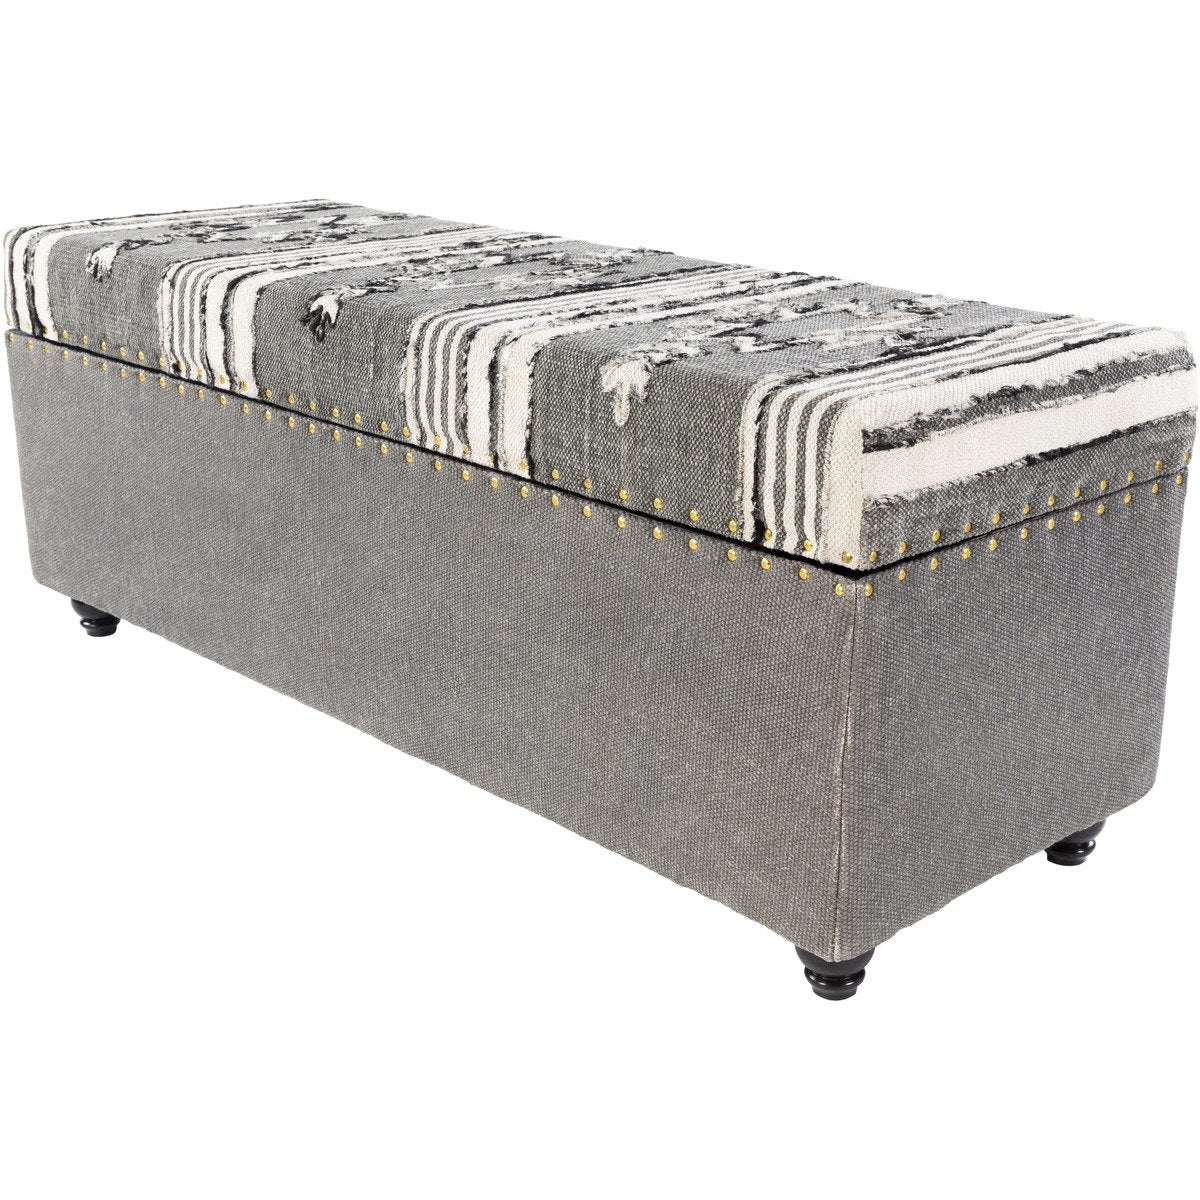 Accent And Storage Benches - Batu BATU-004 Bench